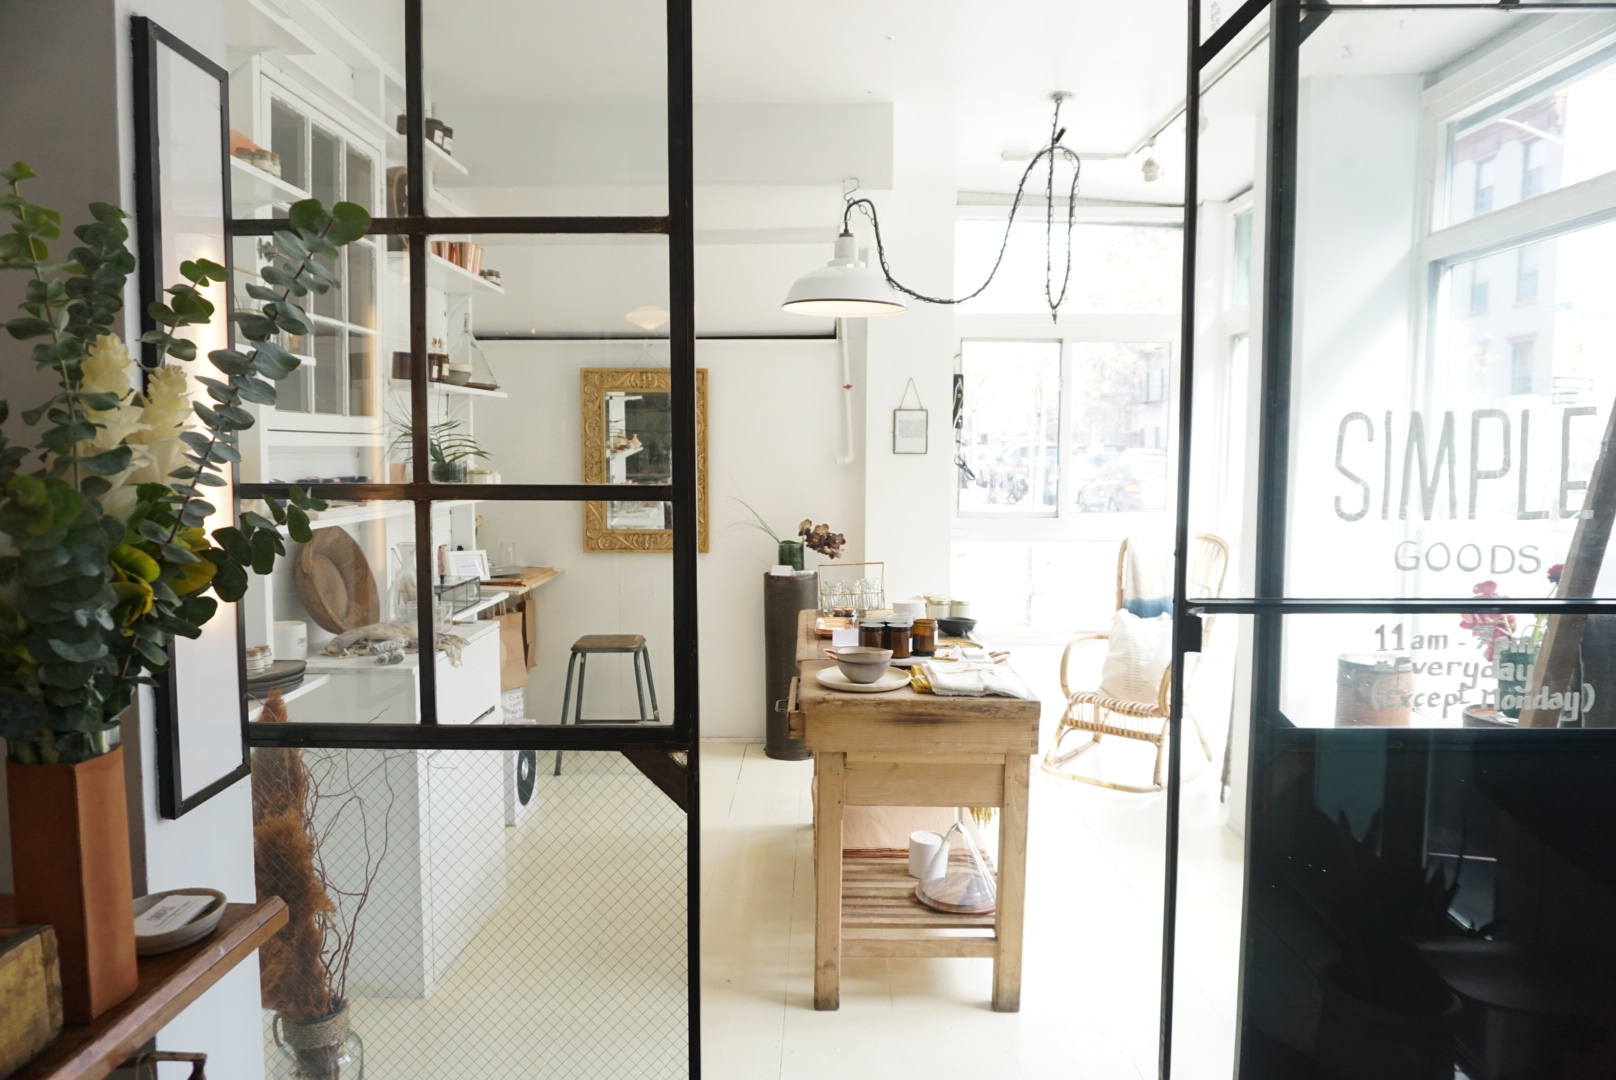 Simple Goods - A blend of french and local goods, curated for your home ( and you.) Neighbors to Simple Cafe